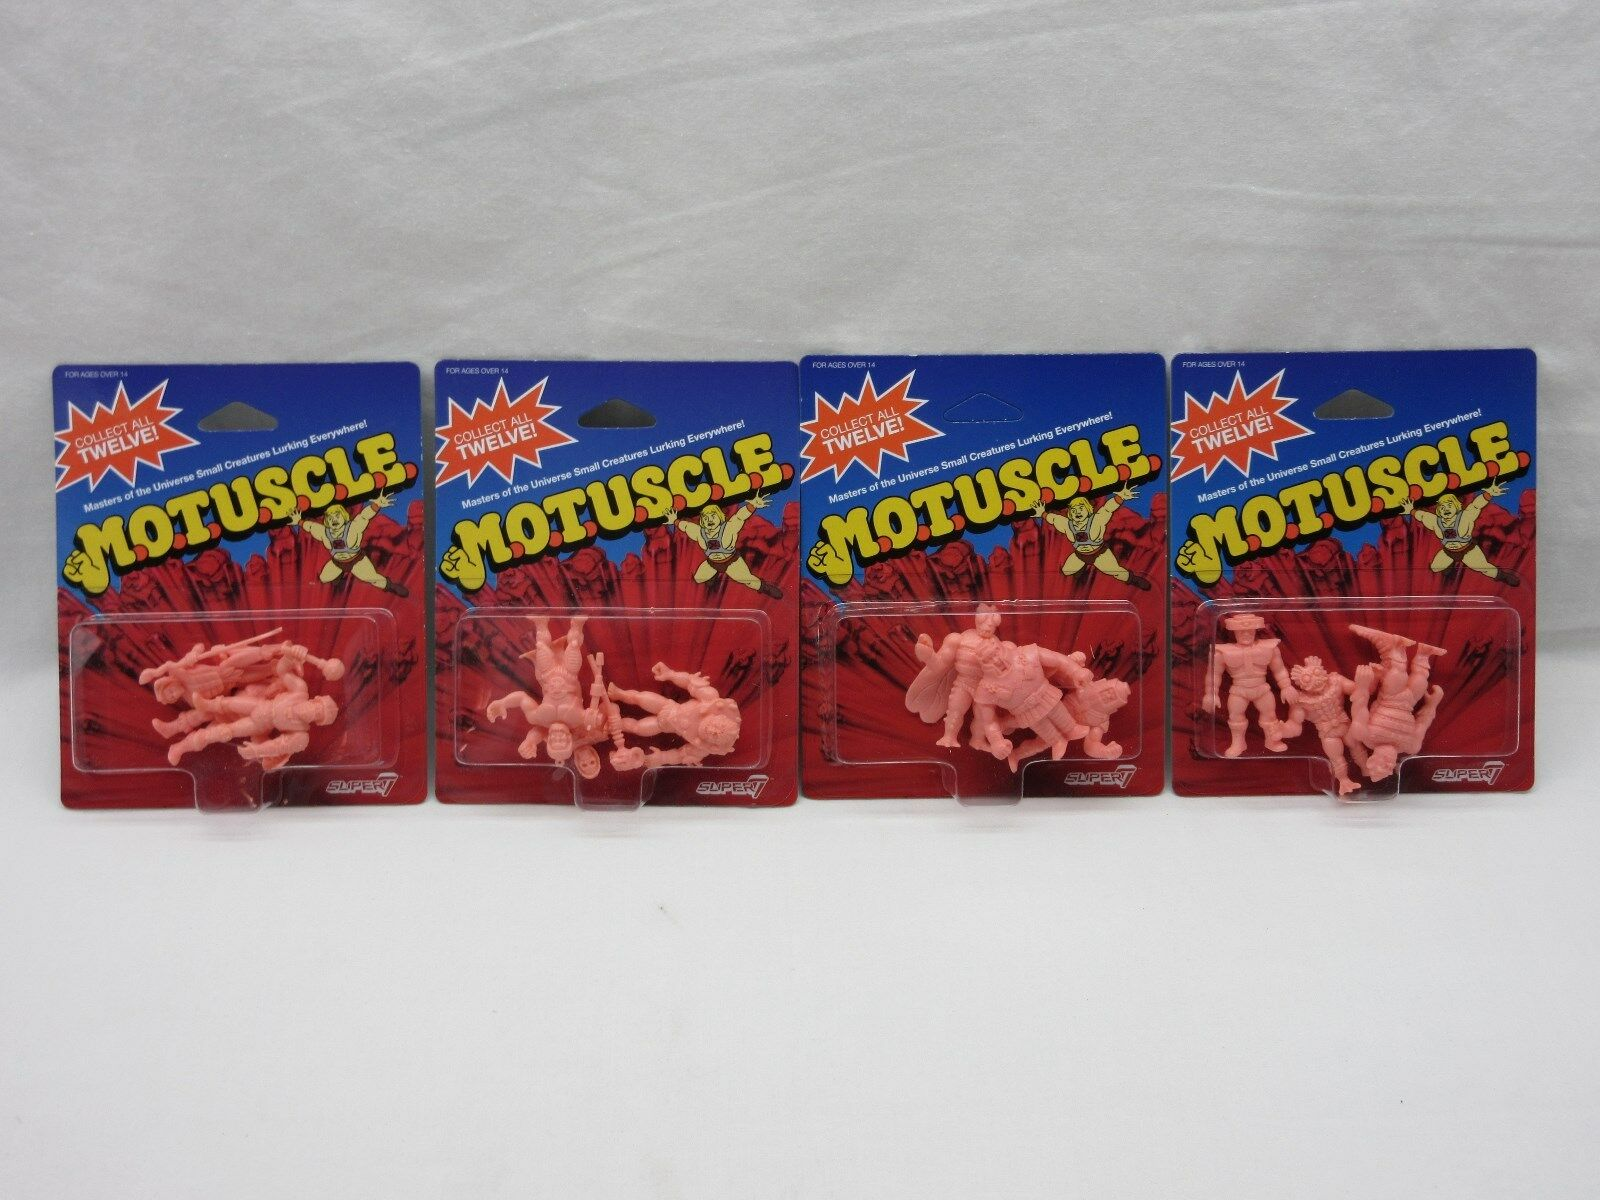 MOTU,M.O.T.U.S.C.L.E. MOC,SDCC Comic Con,Super 7, 12 figures lot,sealed,He Man